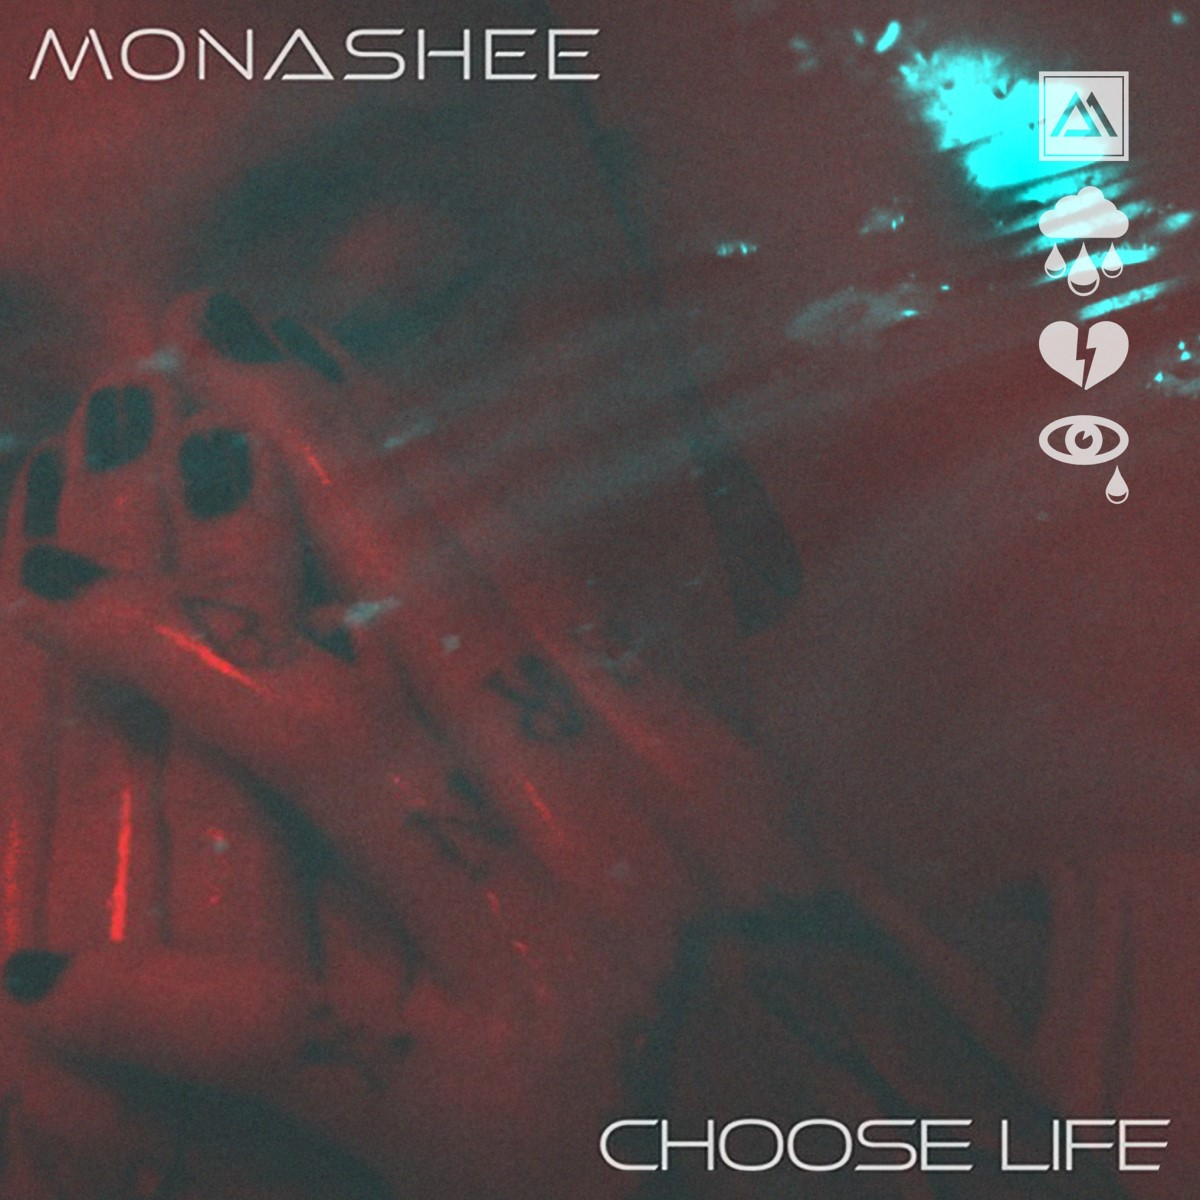 Monashee - Choose Life [single] (2021)